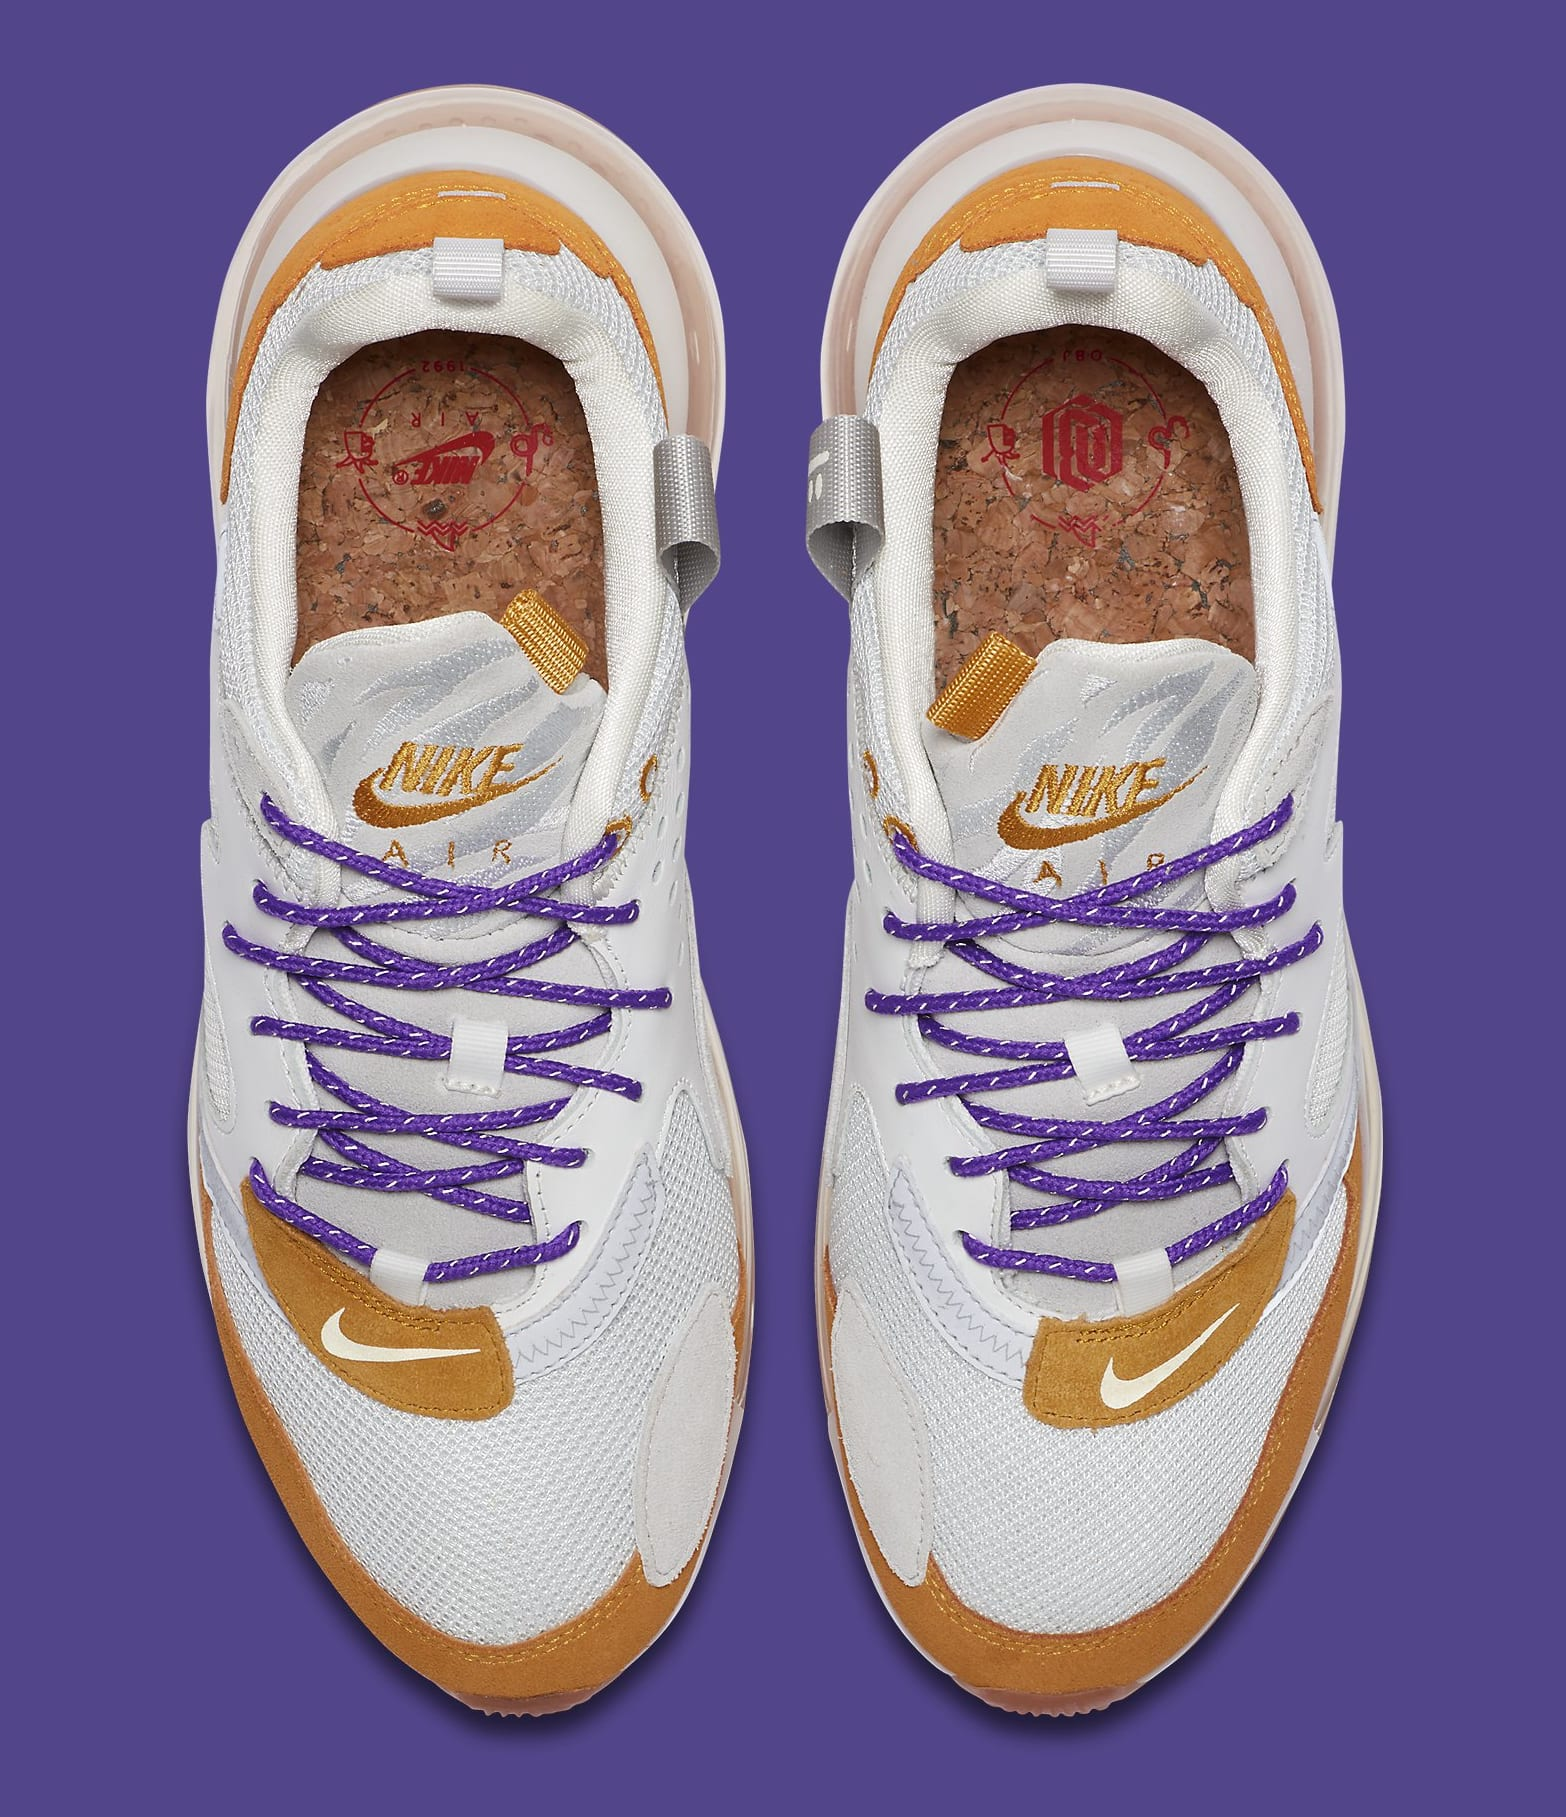 nike-air-max-720-obj-lsu-ck2531-001-top